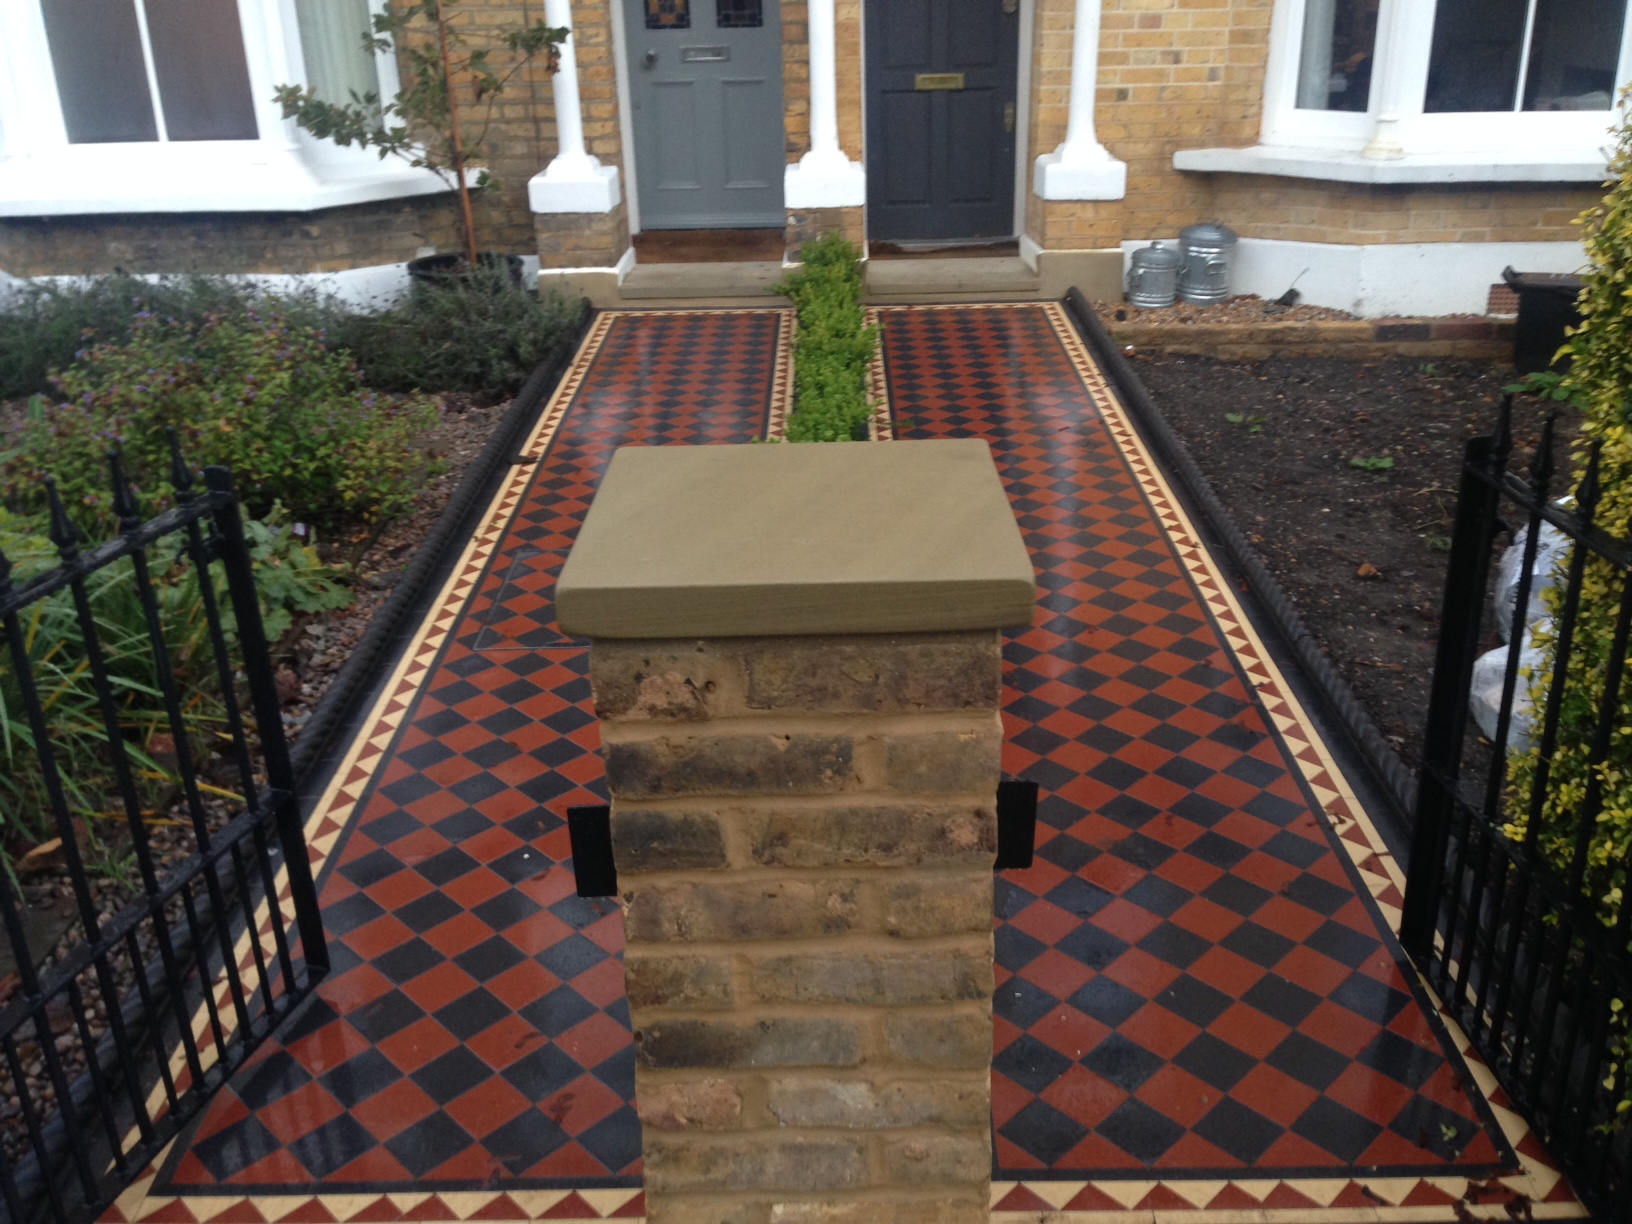 Brixton Herne Hill Victorian Mosaic Tile Path black and red tile with Yorkstone pier cap entrance stone and imperial yellow brick london stock wall (8)